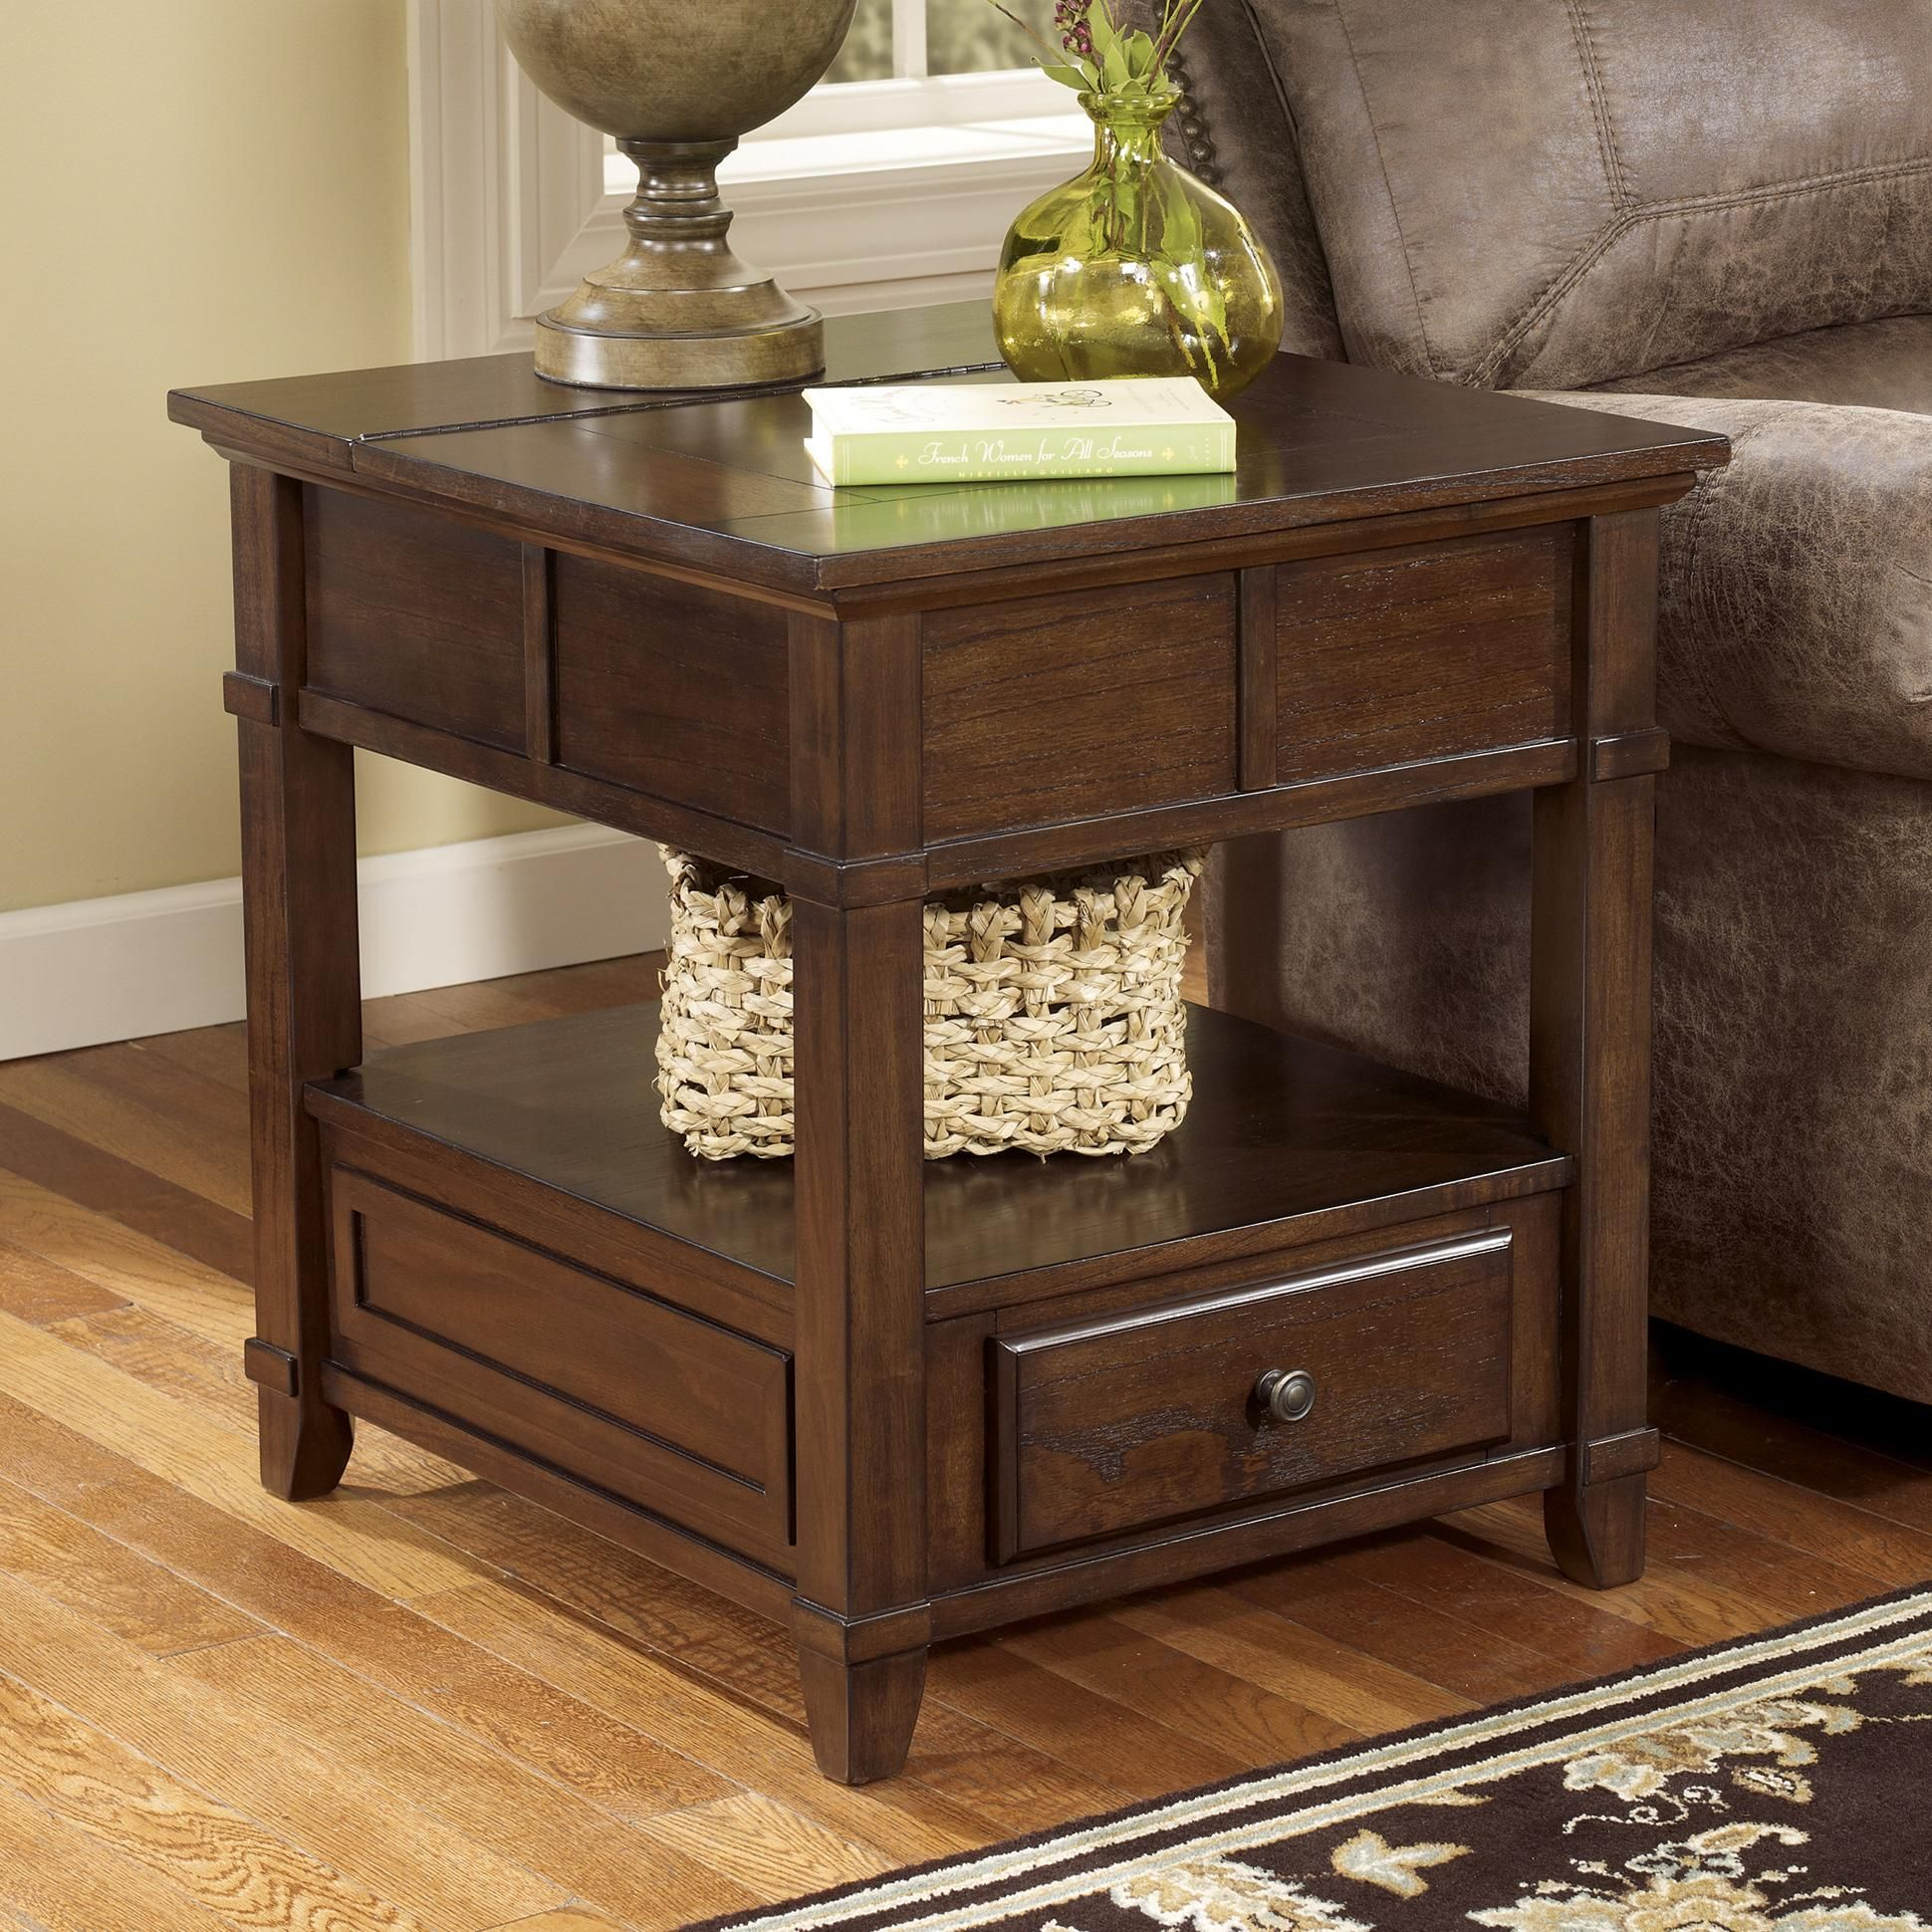 gately end table with hidden storage & electrical outlet by